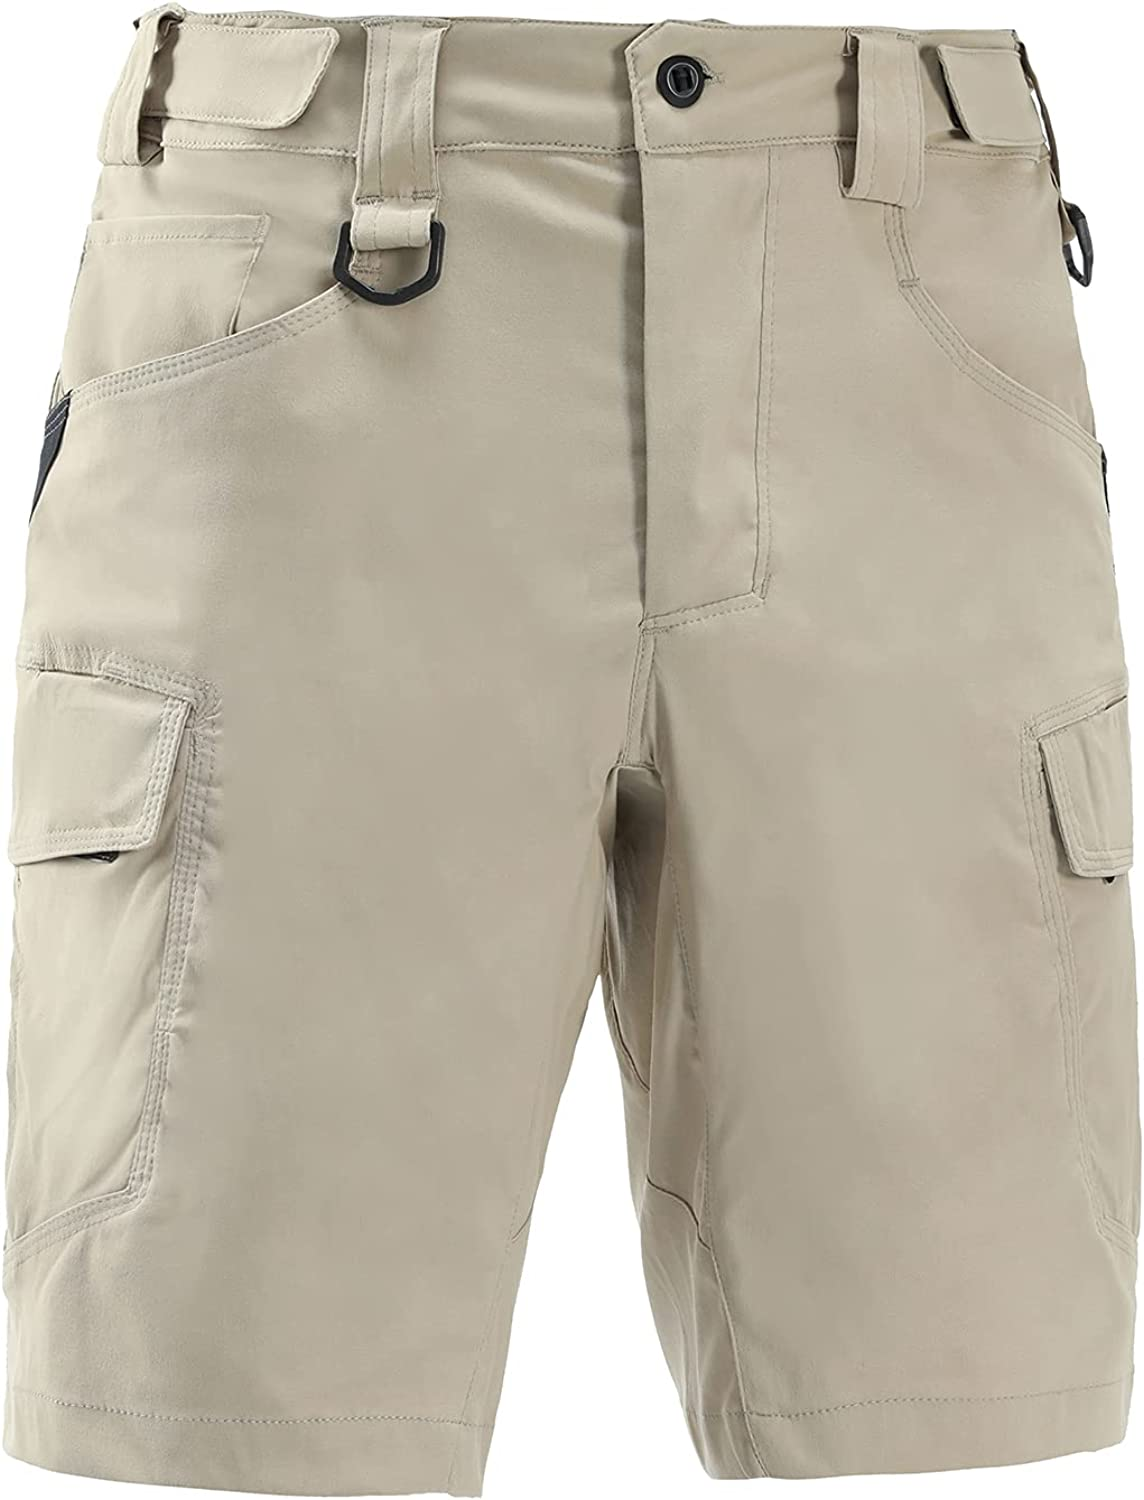 Protective Mens Stretch Tactical Shorts Hiking Limited time Quantity limited sale Quick Dry Cargo